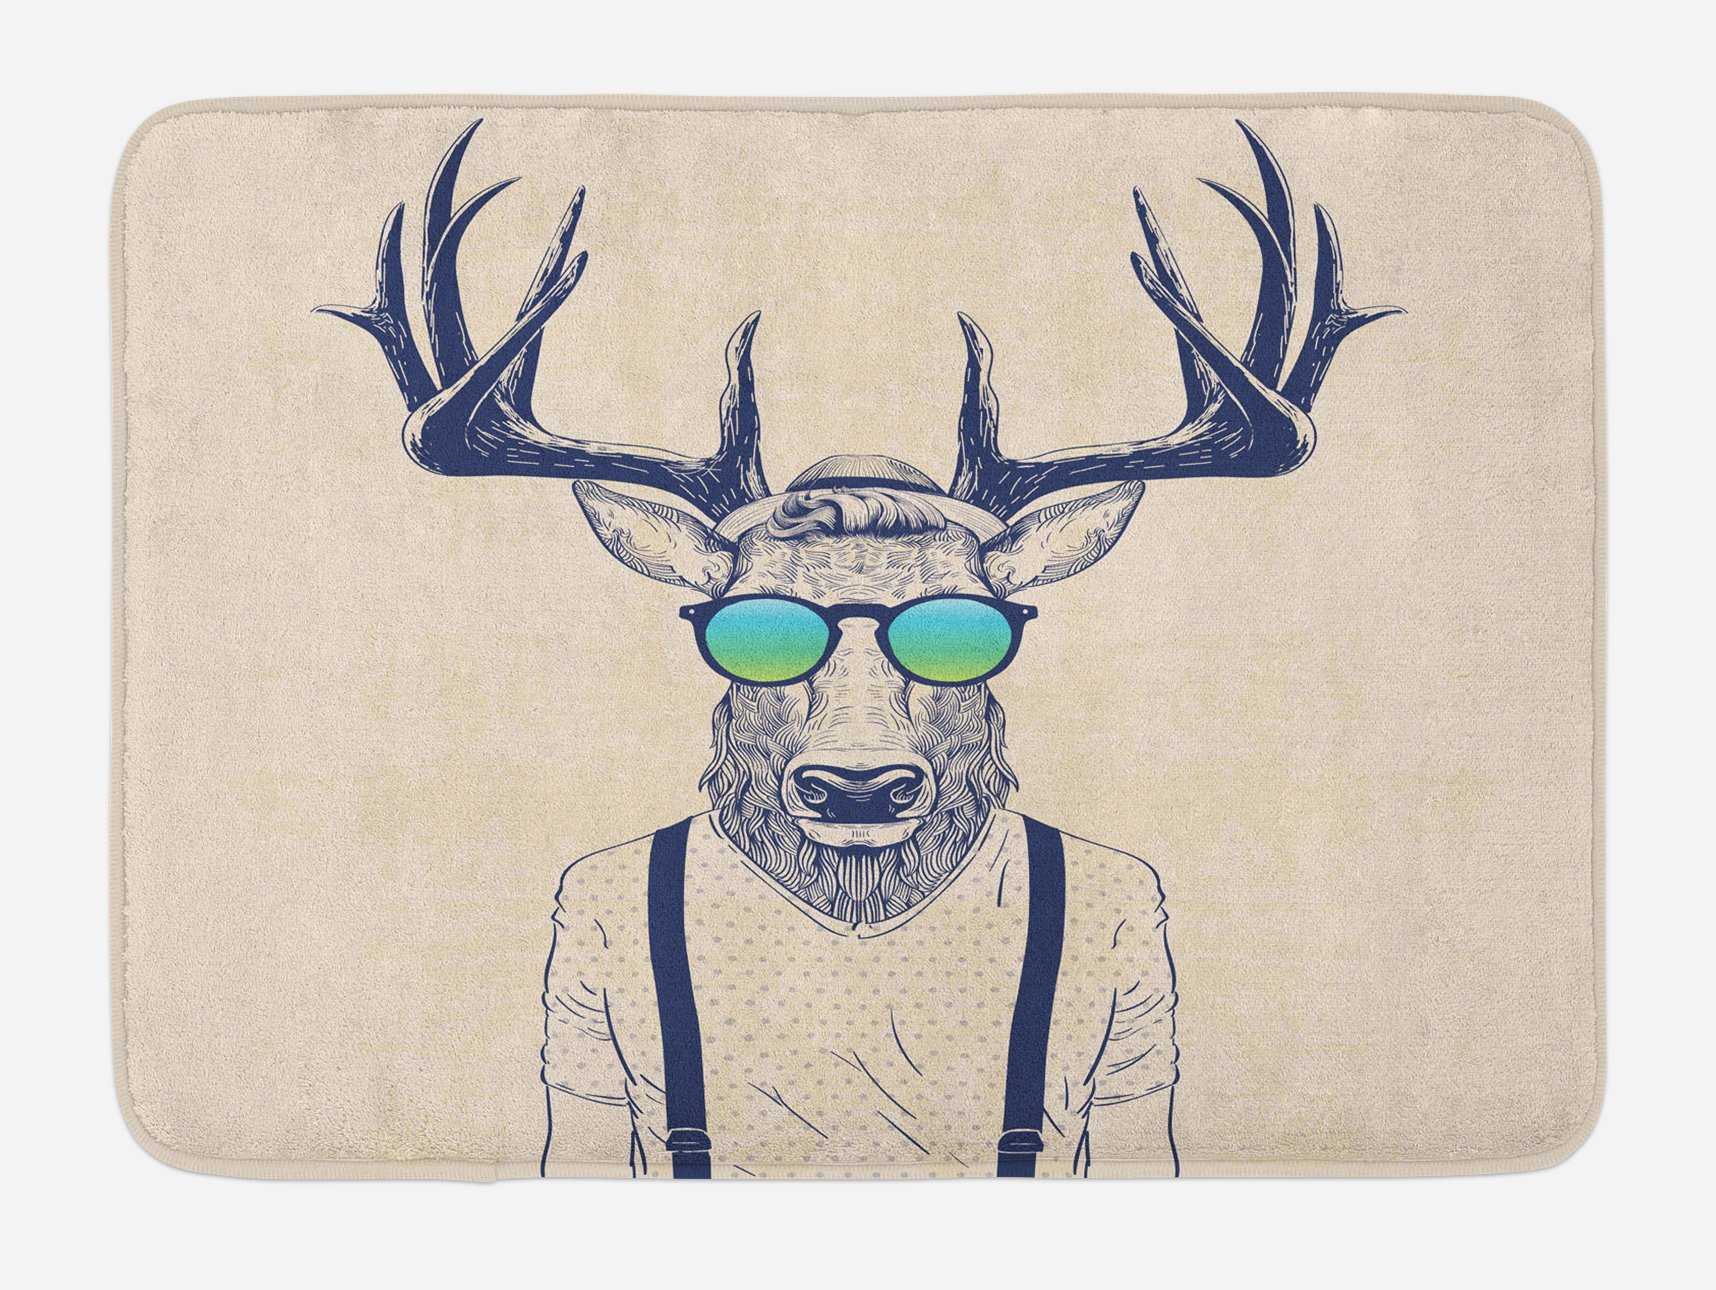 Ambesonne Antlers Bath Mat, Illustration of Deer Dressed Up Like Cool Hipster Fashion Creative Fun Animal Art, Plush Bathroom Decor Mat with Non Slip Backing, 29.5 W X 17.5 W Inches, Beige Black